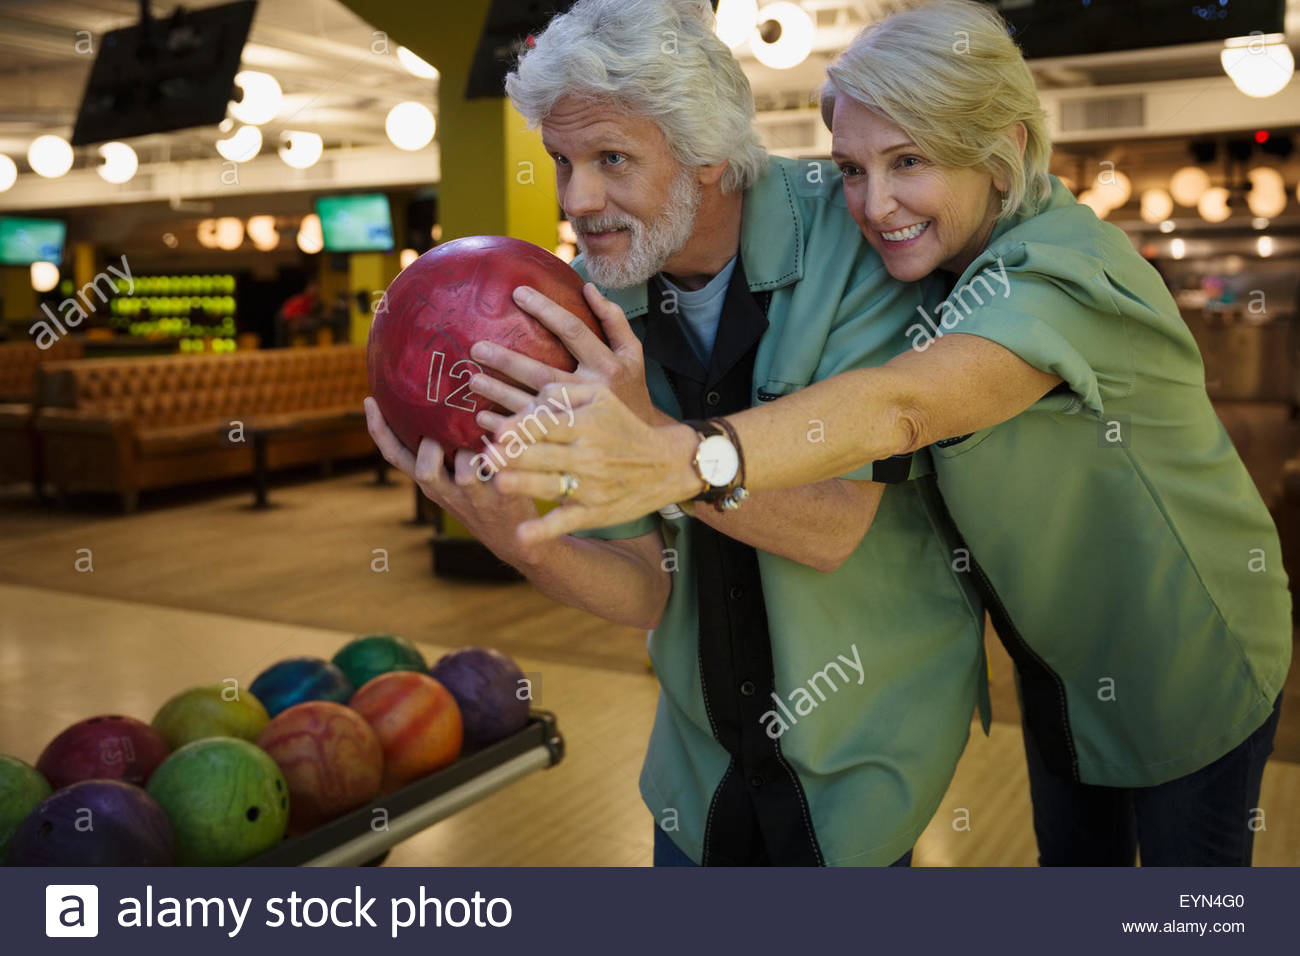 Wife guiding husband bowling at bowling alley - Stock Image